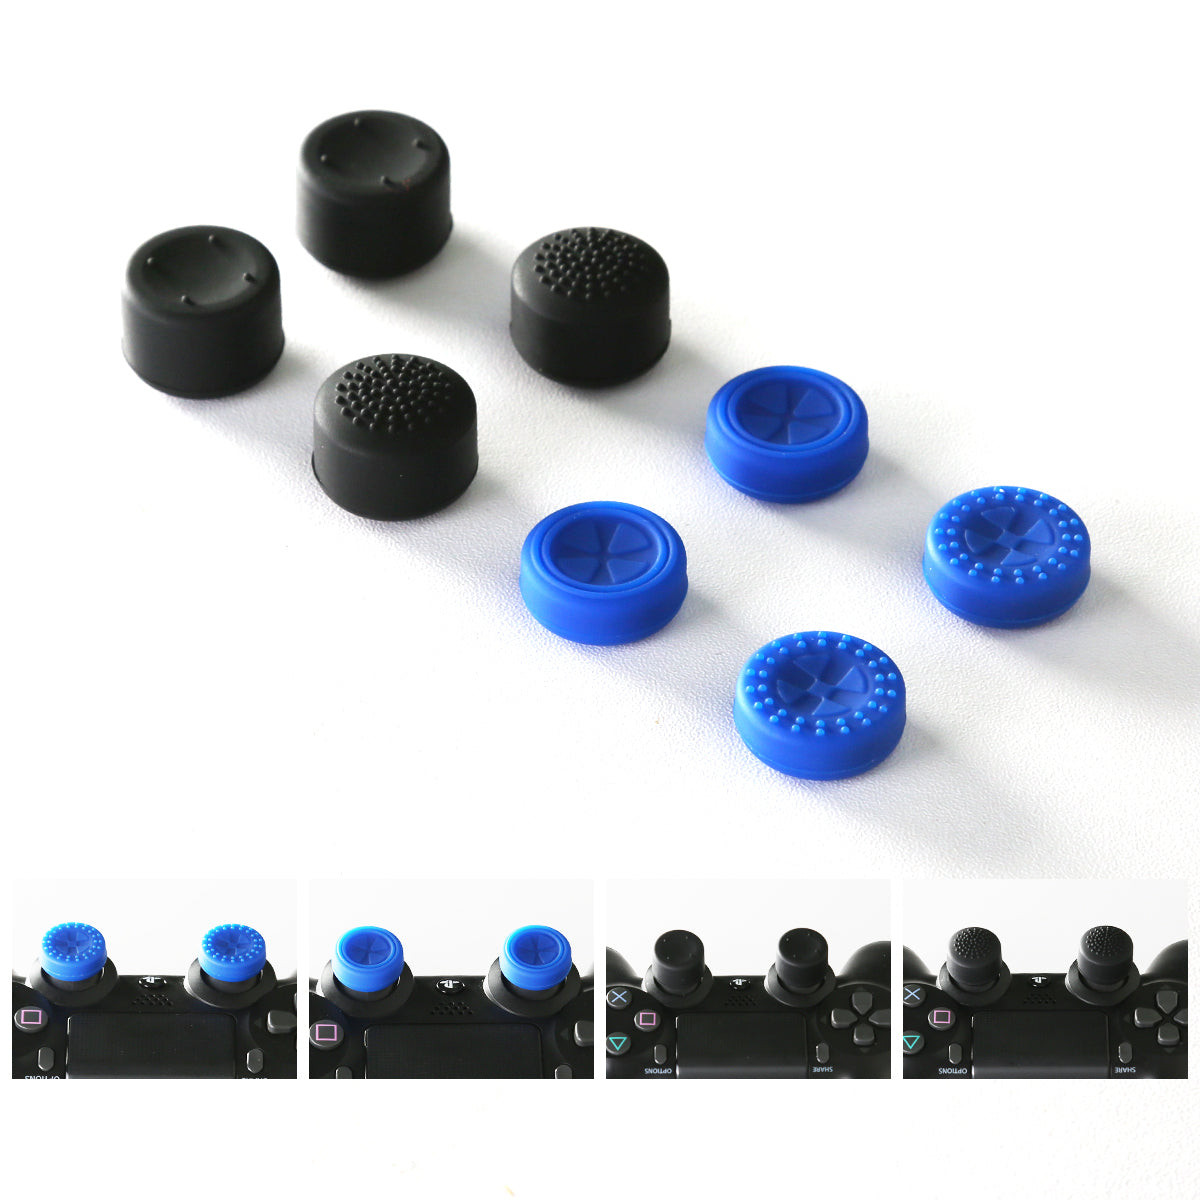 GameSir Thumb Grip Pack for PS4 / PS4 Slim / PS4 Pro Controller